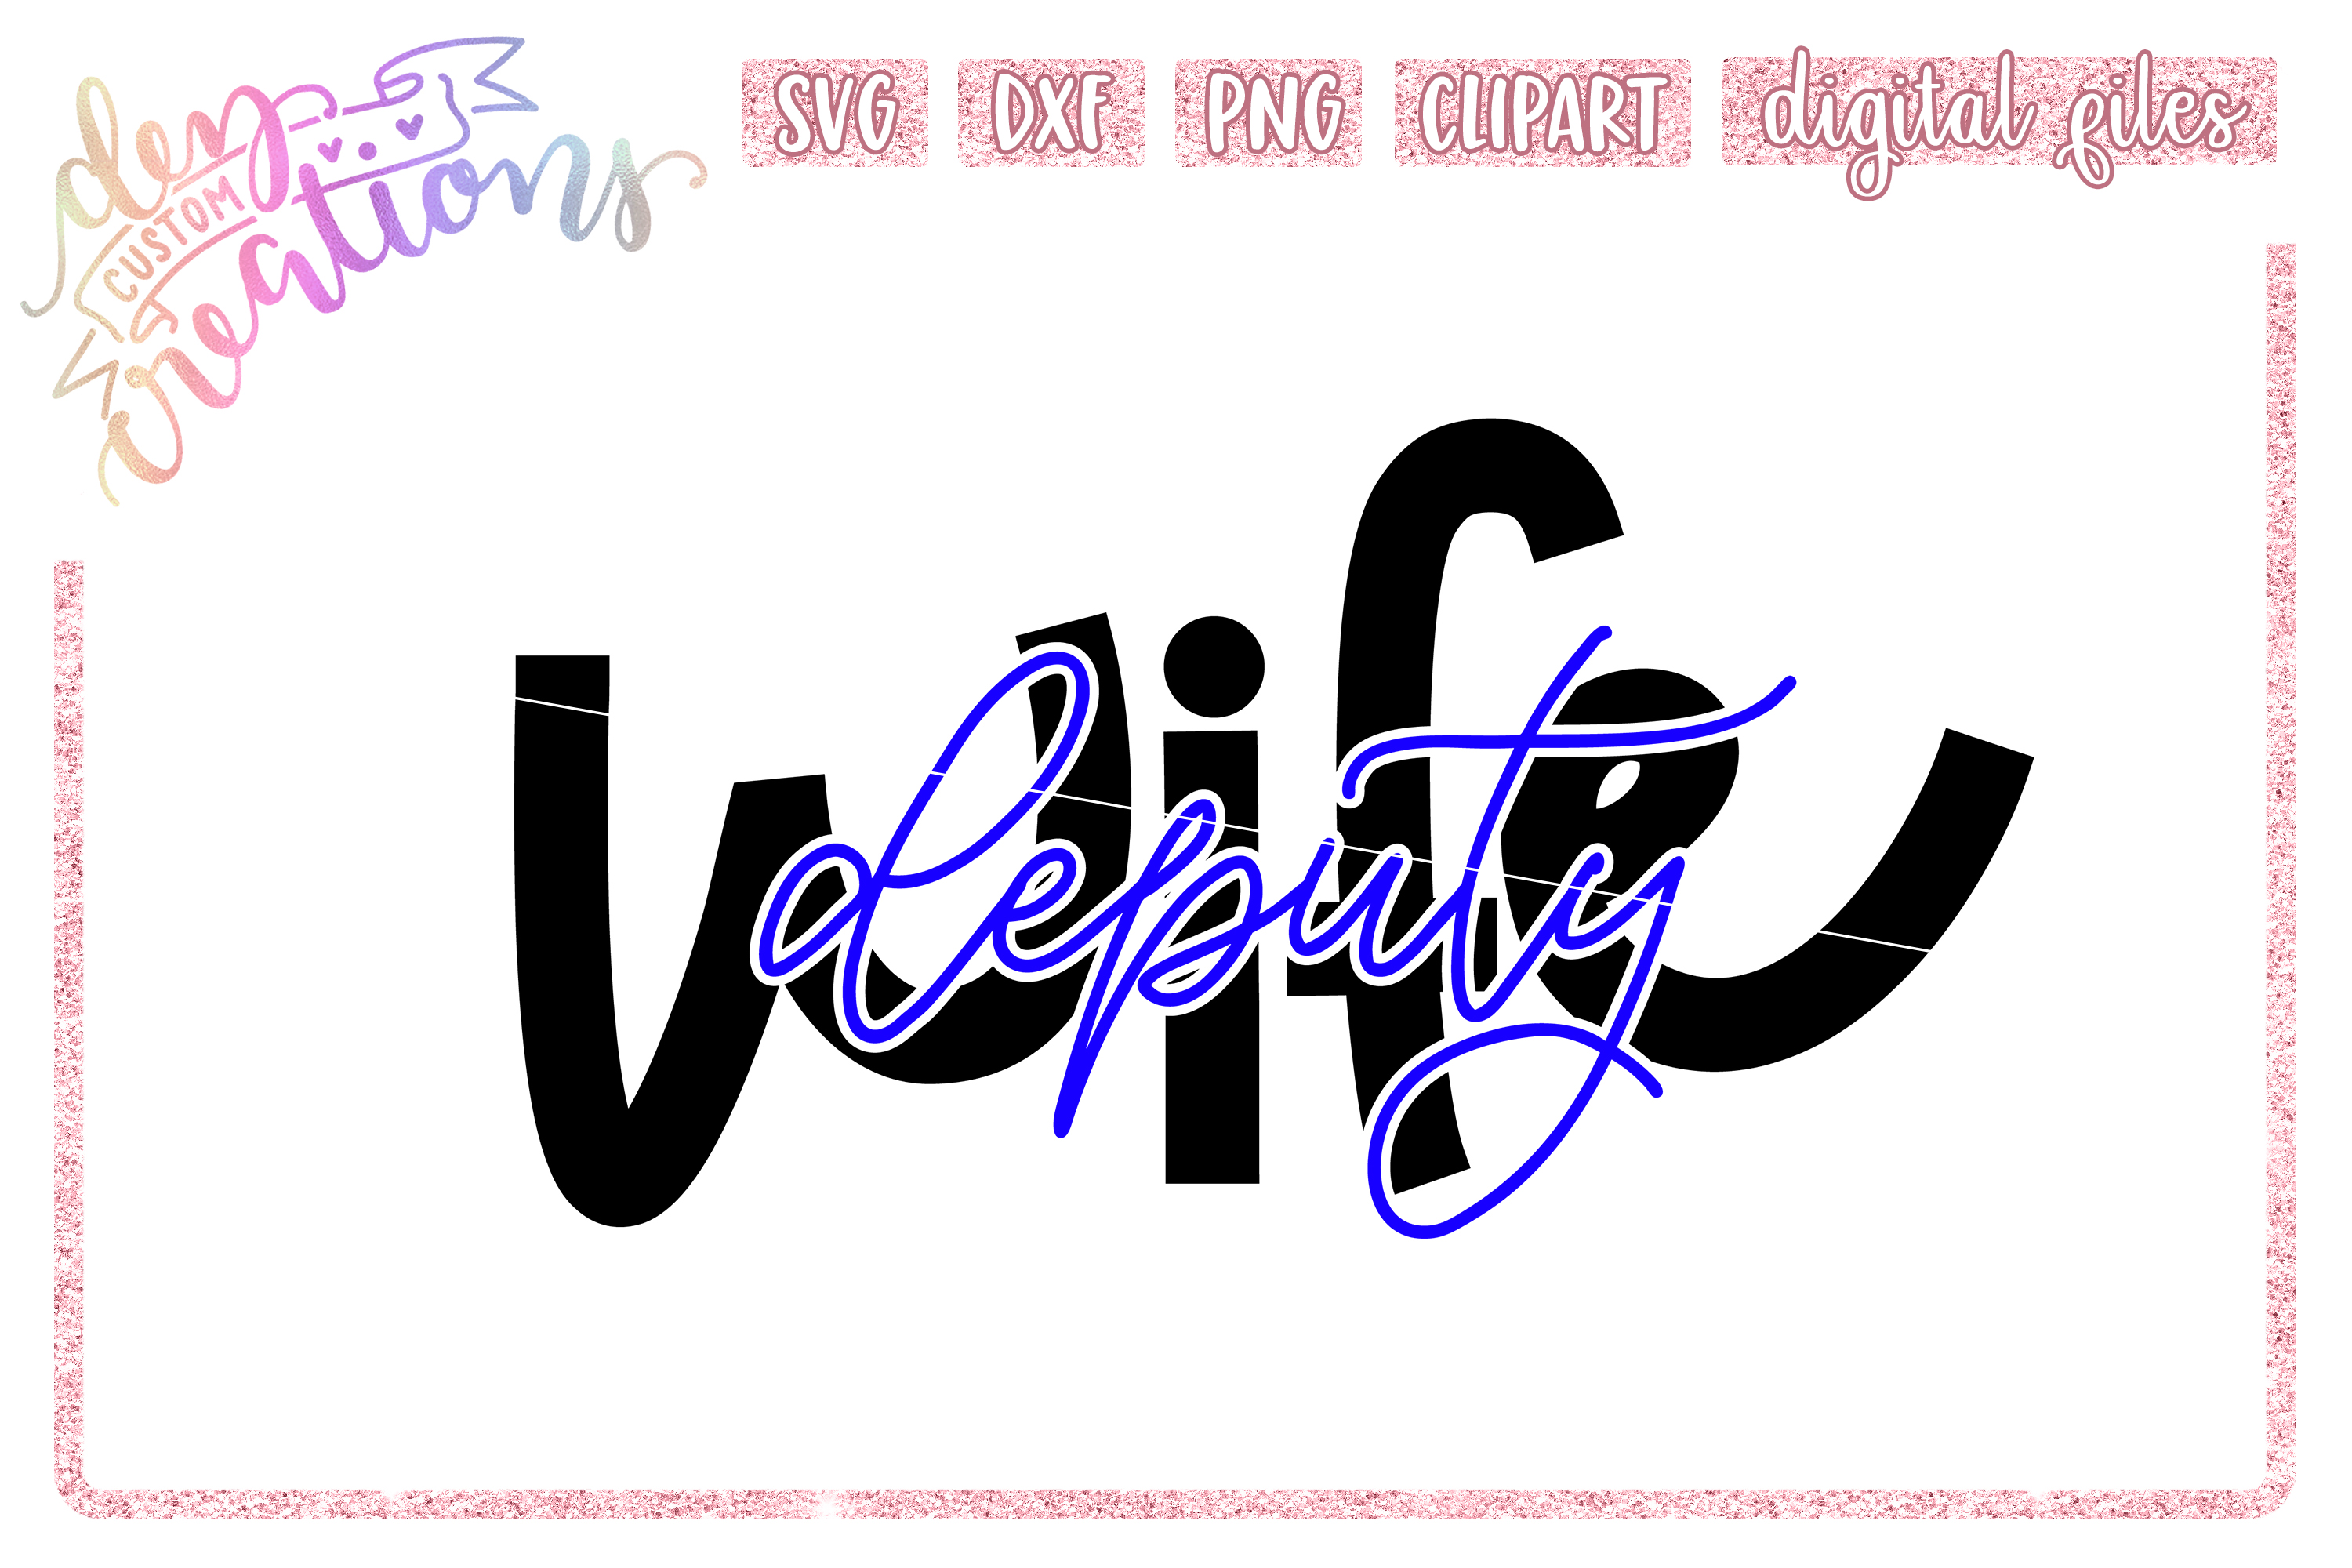 Deputy Wife Thin Blue Line SVG example image 1